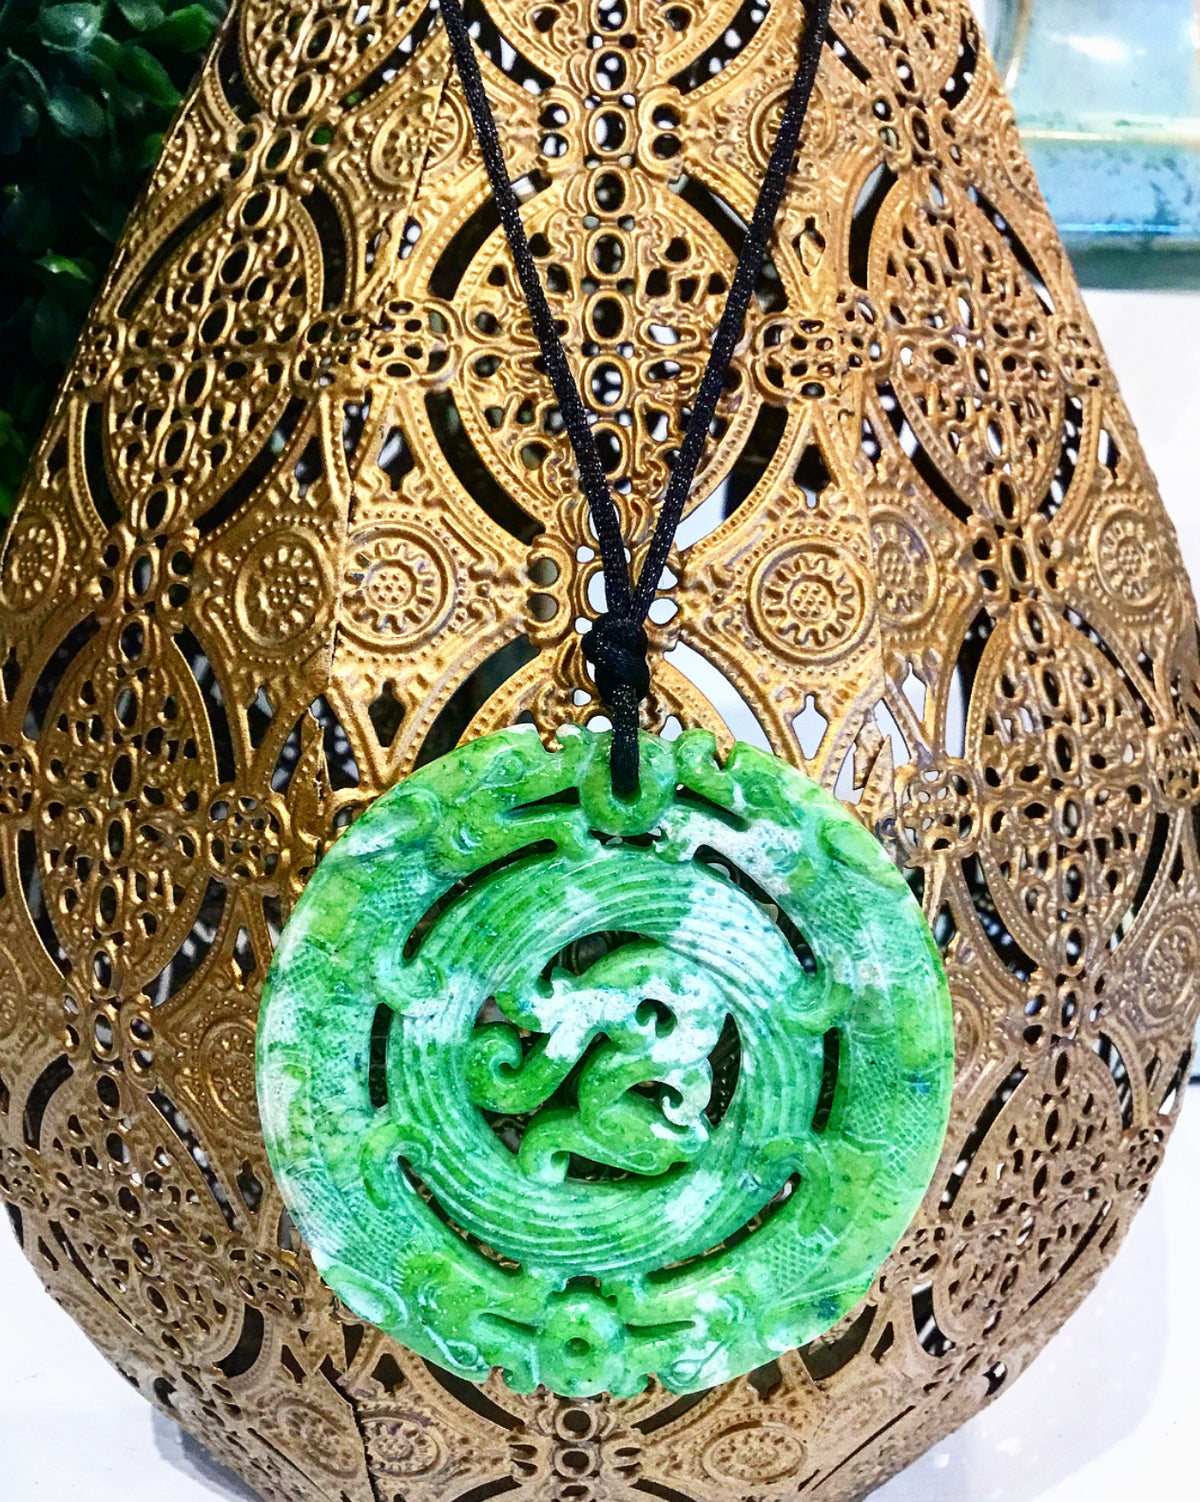 Friday Favorite: Gorgeous & New Teramasu Carved Green Jade Pendant on Black Silk Satin Necklace with Freshwater Pearl Toggle